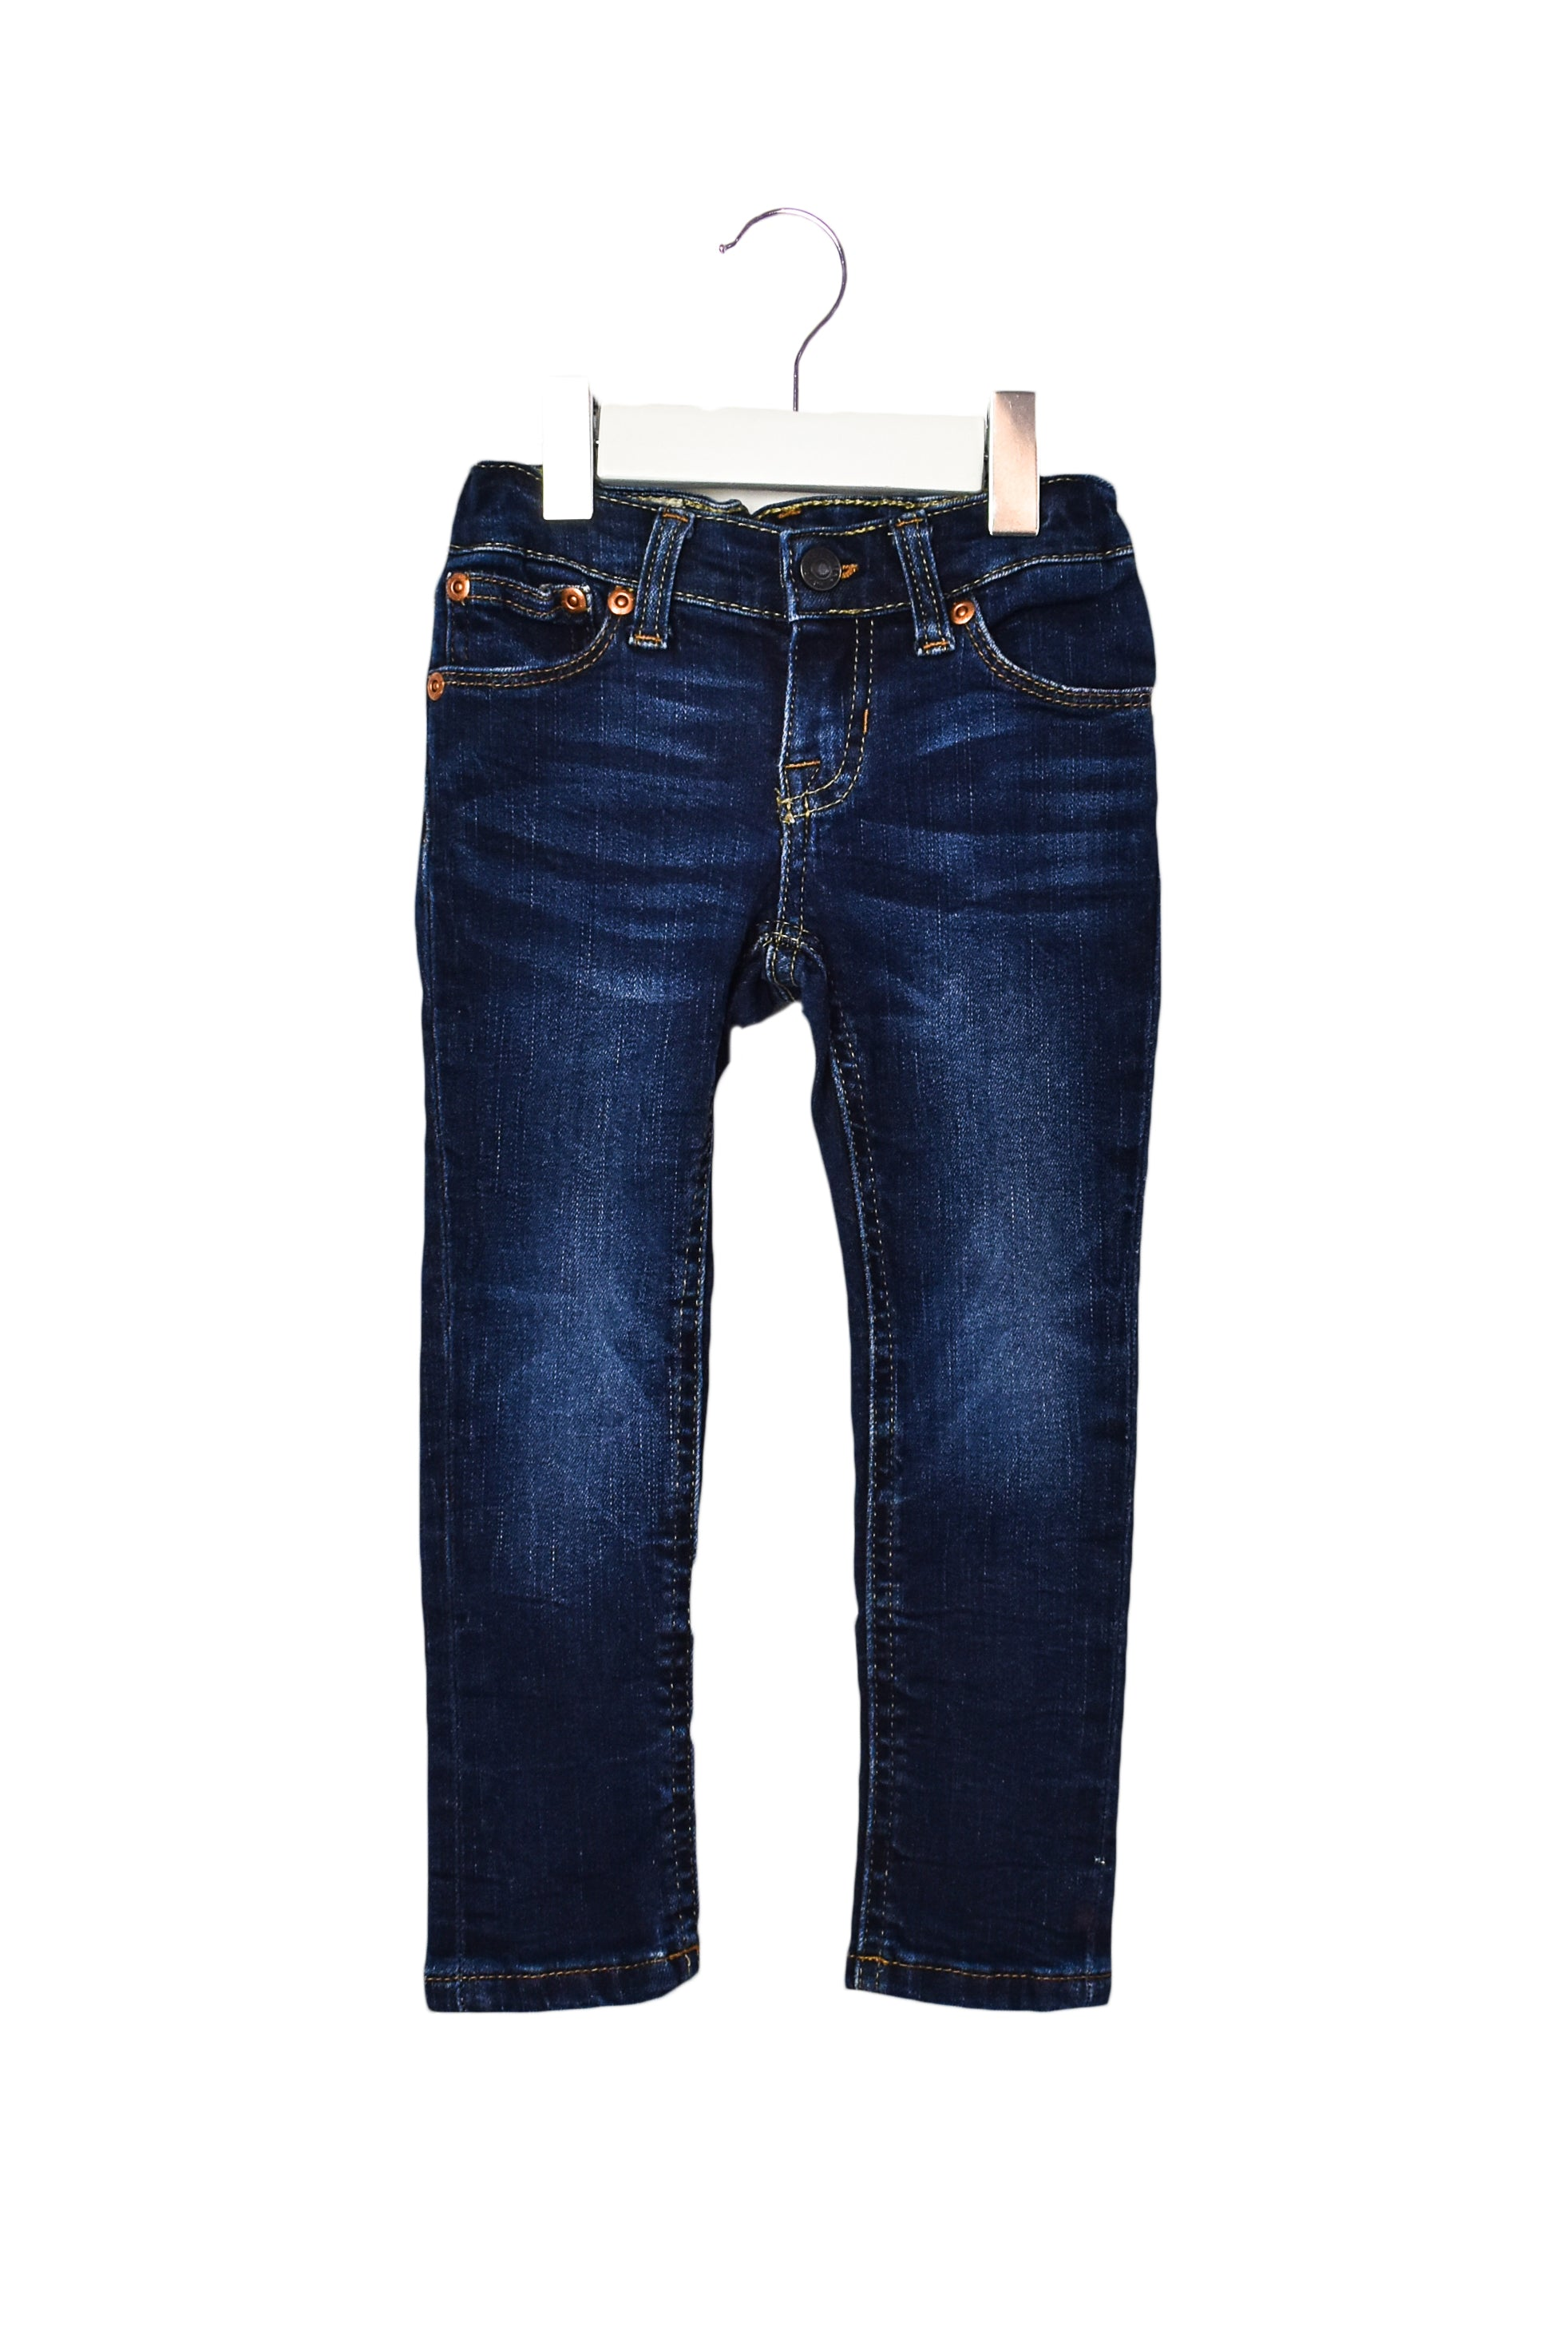 10006657 Polo Ralph Lauren Kids~Jeans 3T at Retykle